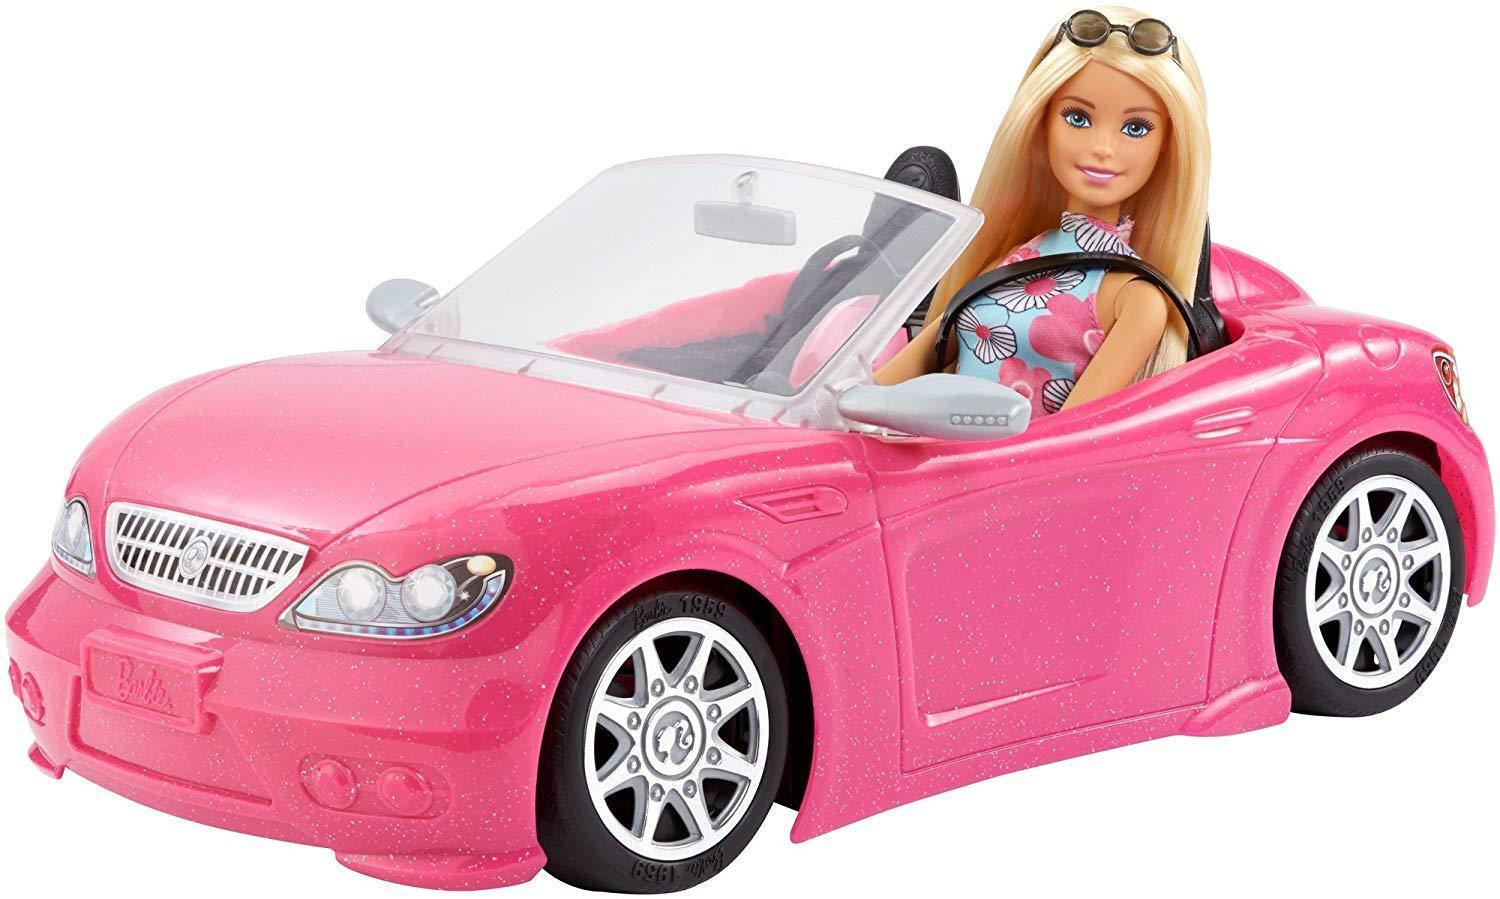 barbie convertible pink car and doll pack. Black Bedroom Furniture Sets. Home Design Ideas